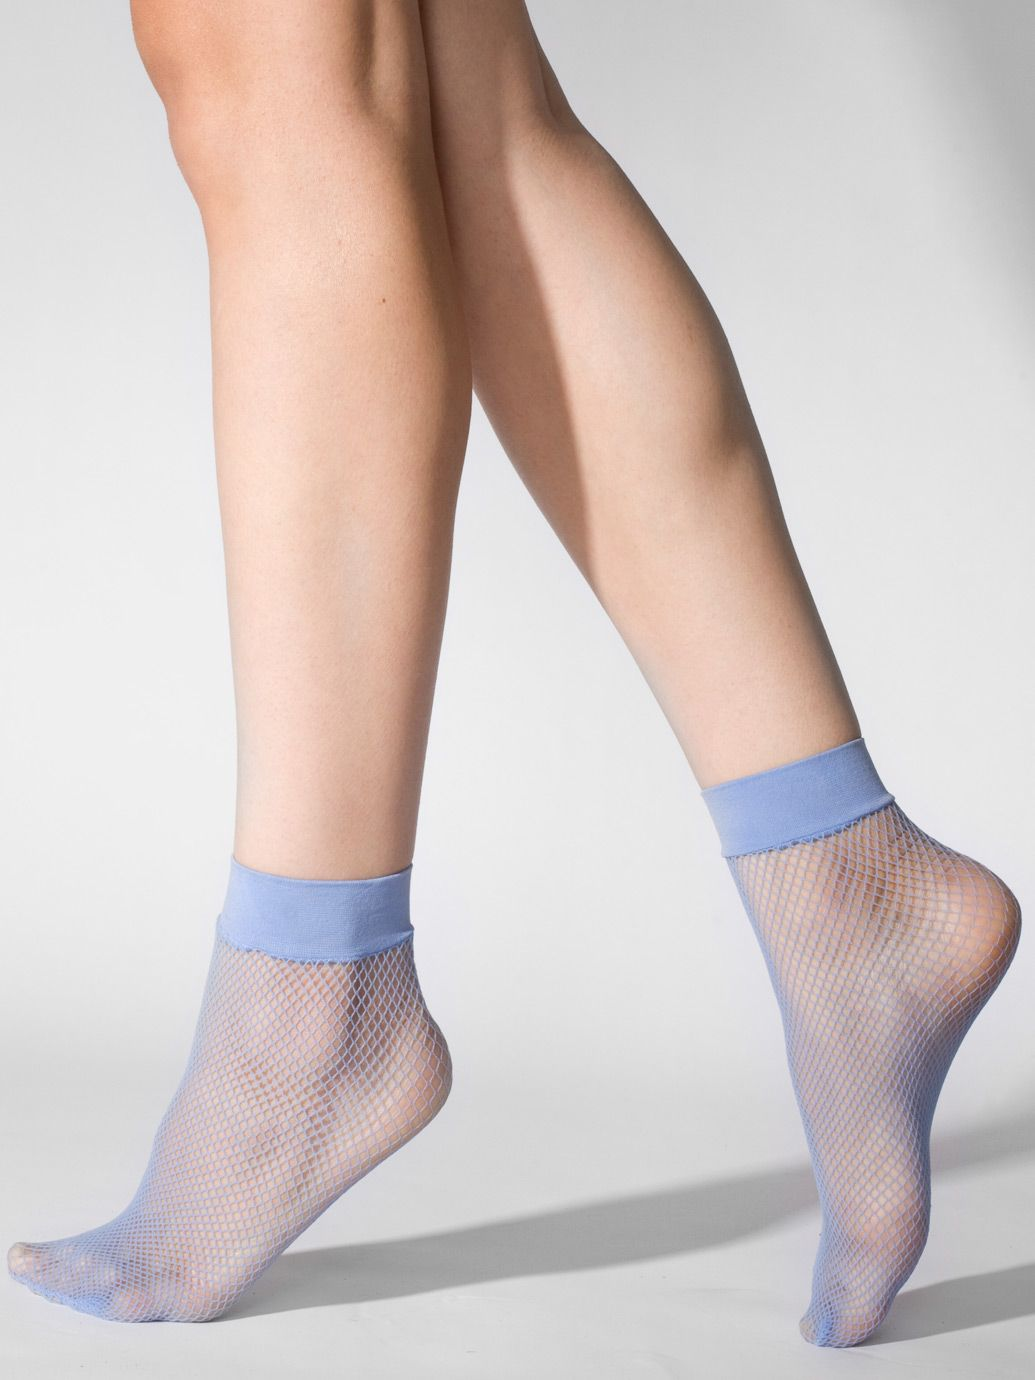 e32d0b127682 SOCKS  American Apparel - Fishnet Sock  8.00 (TO GO WITH  Jelly Sandals)